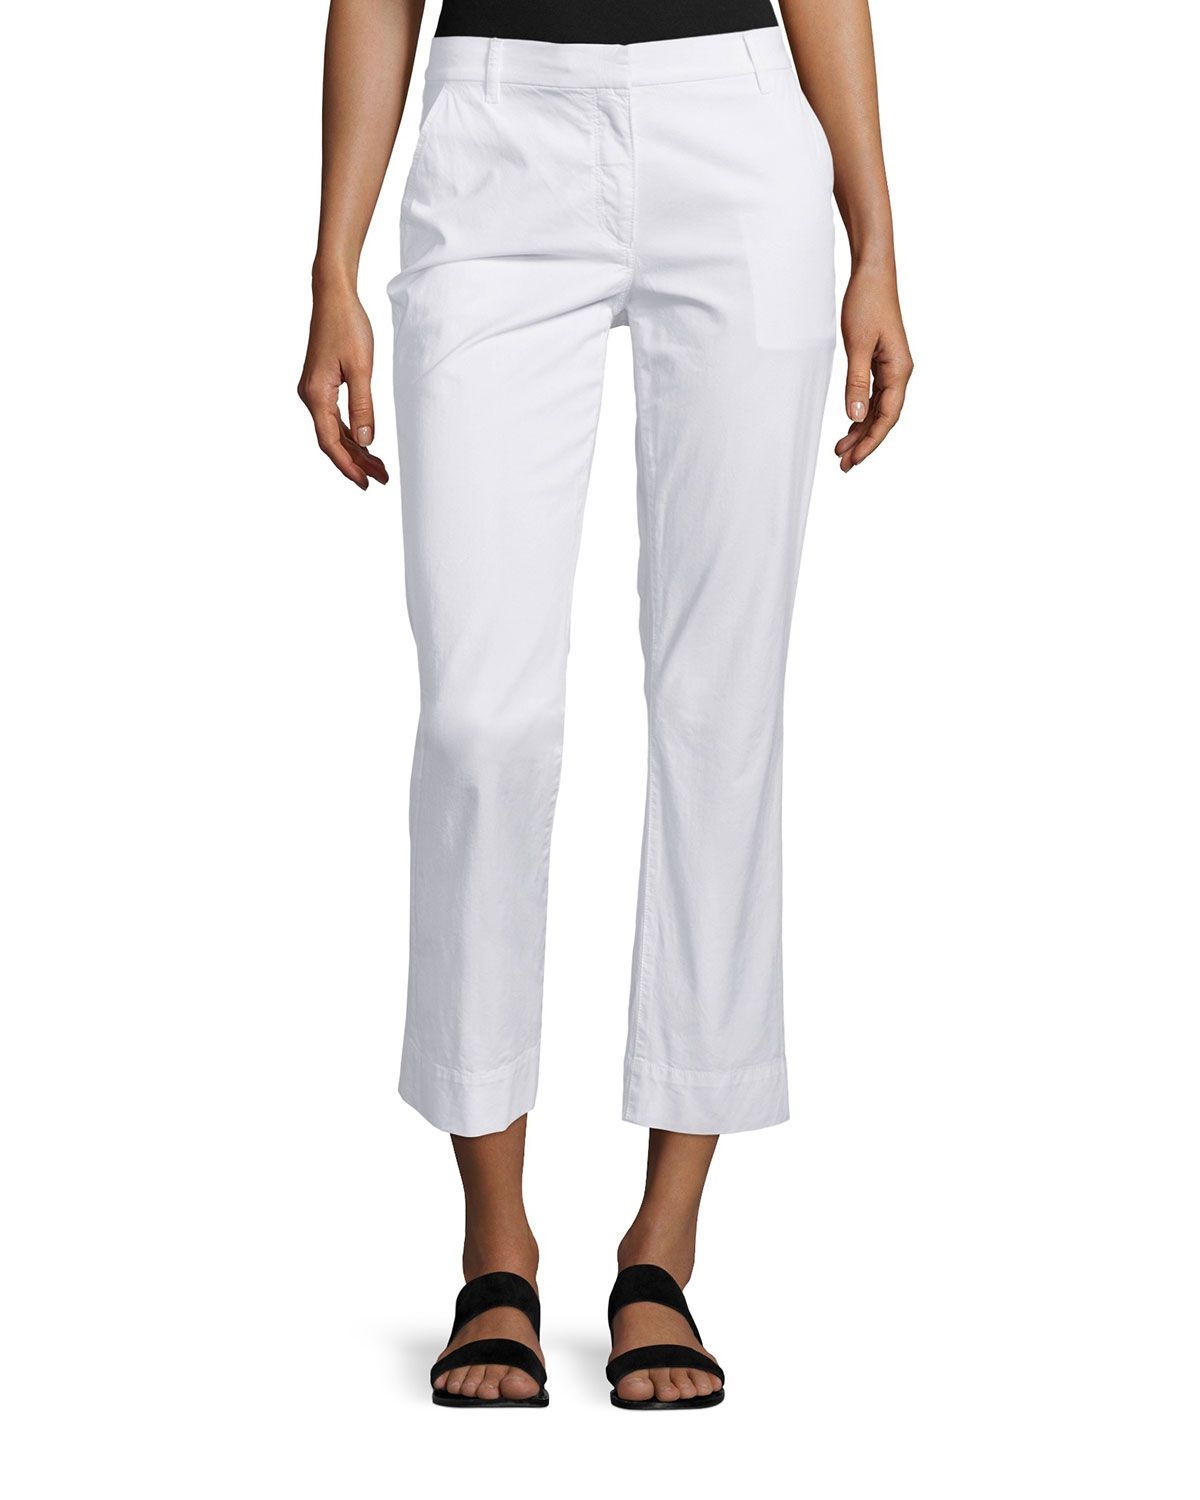 slim-fit trousers - White Theory Best Store To Get Online eLAtw6